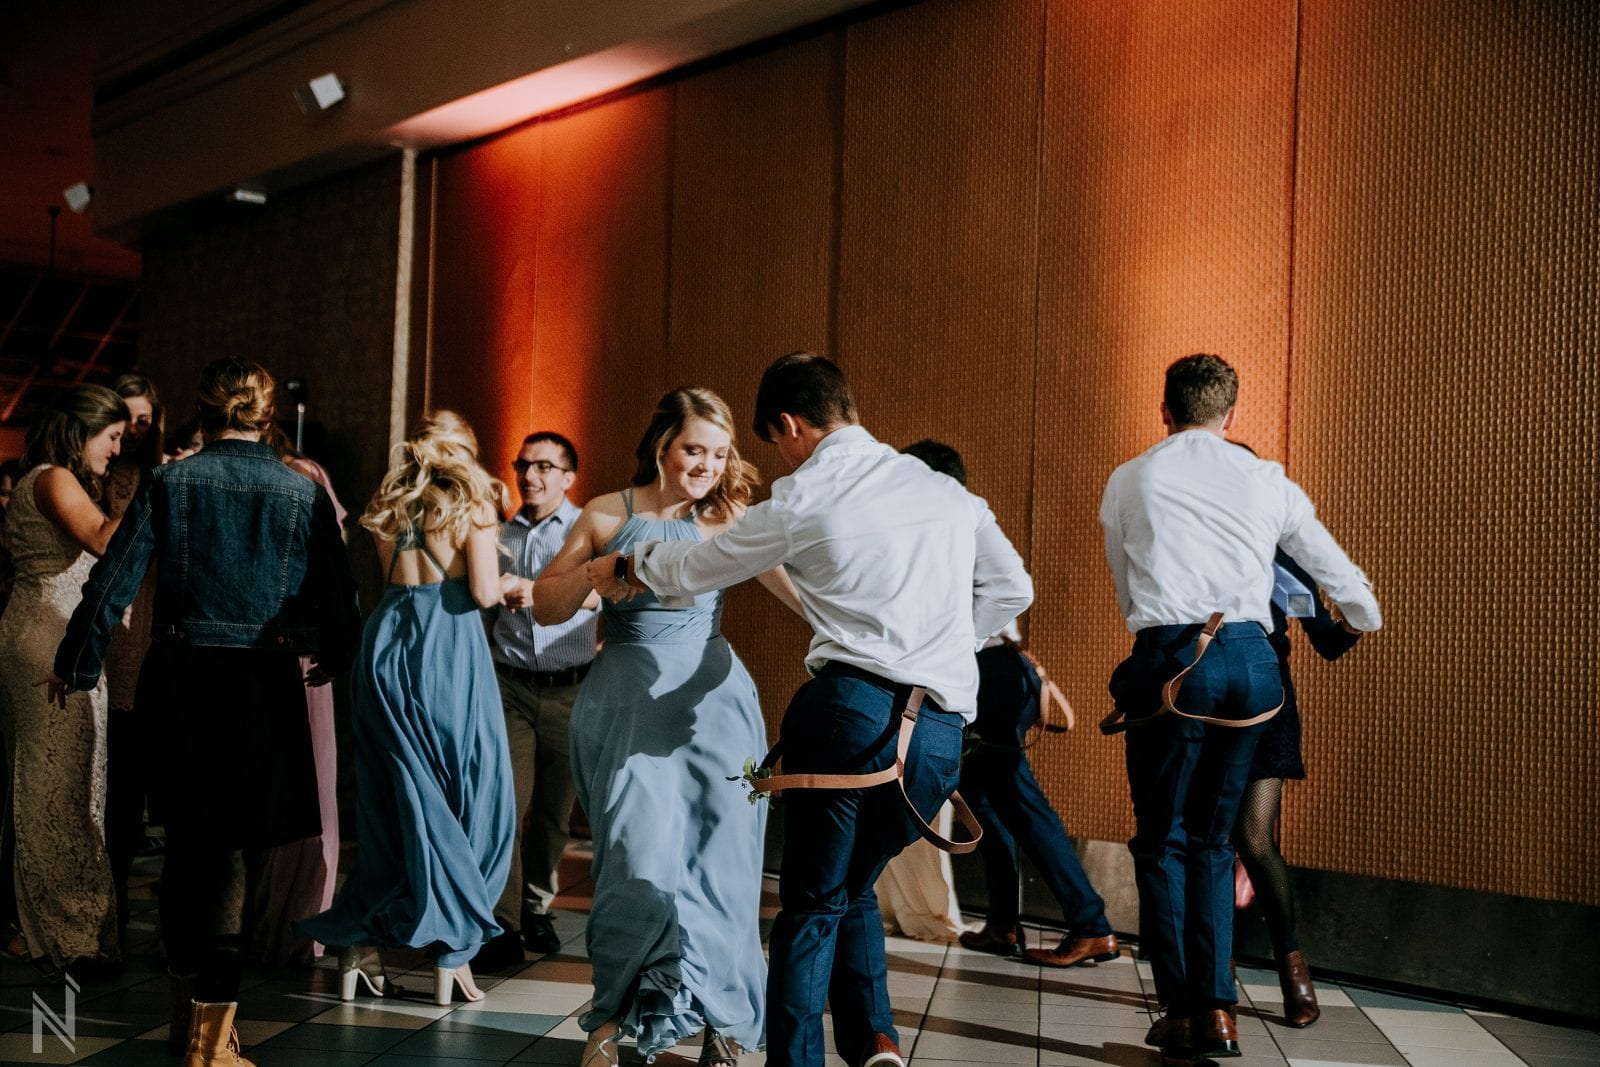 St. Louis Zoo wedding reception photography at Lakeside Cafe